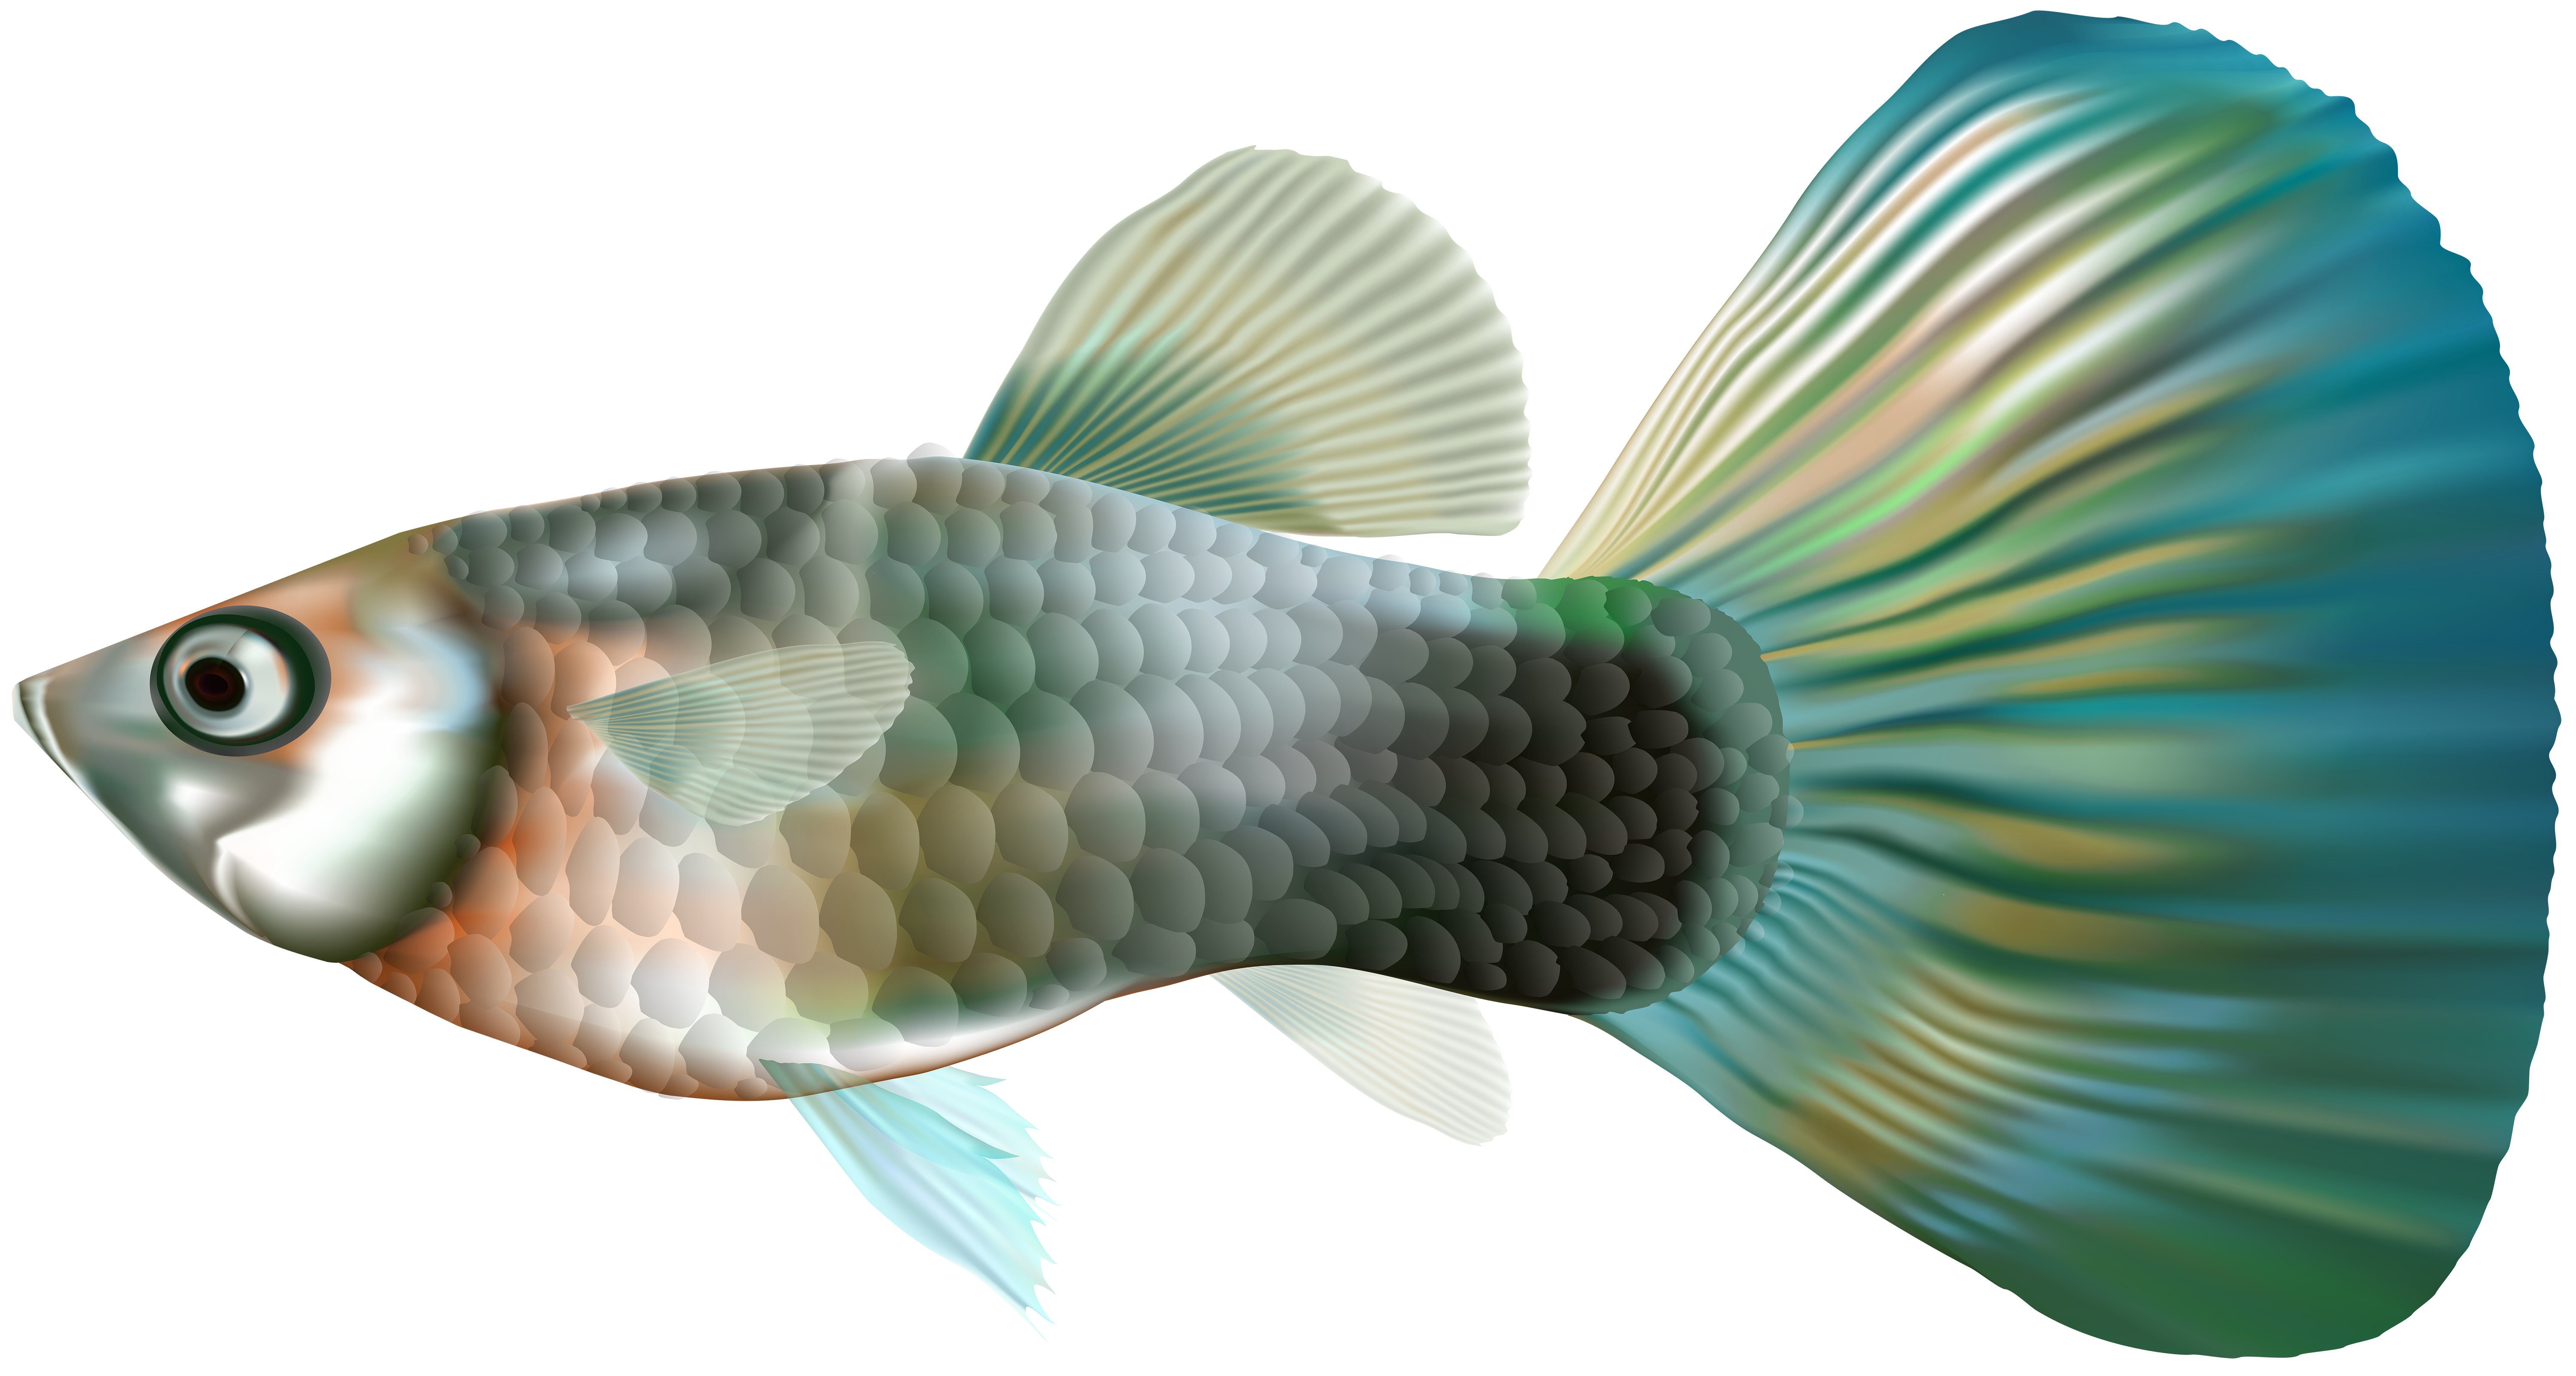 Clipart fish heart. Female guppy png clip